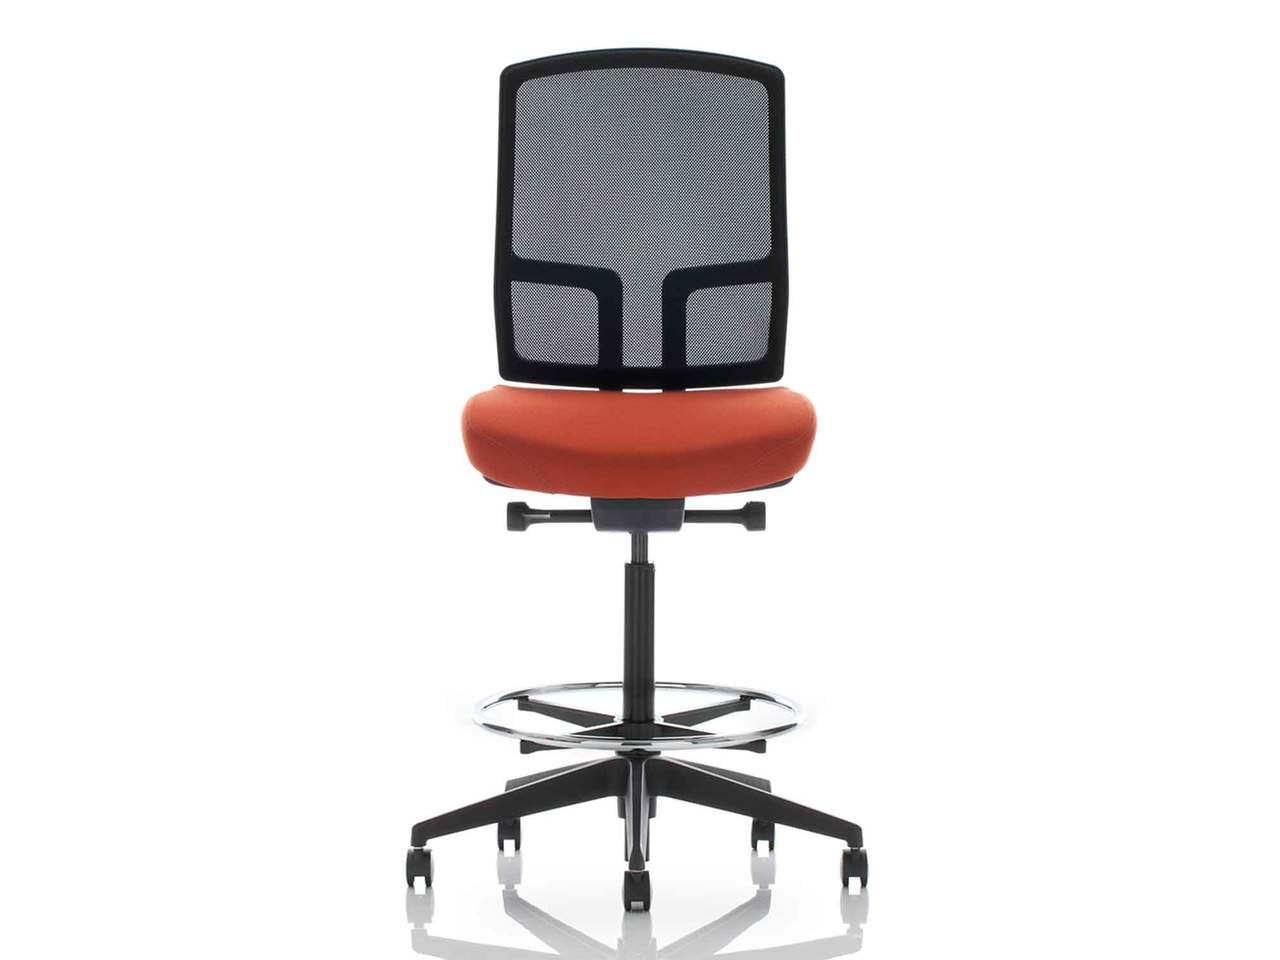 united chair medical stool metal armchair expression office furniture warehouse